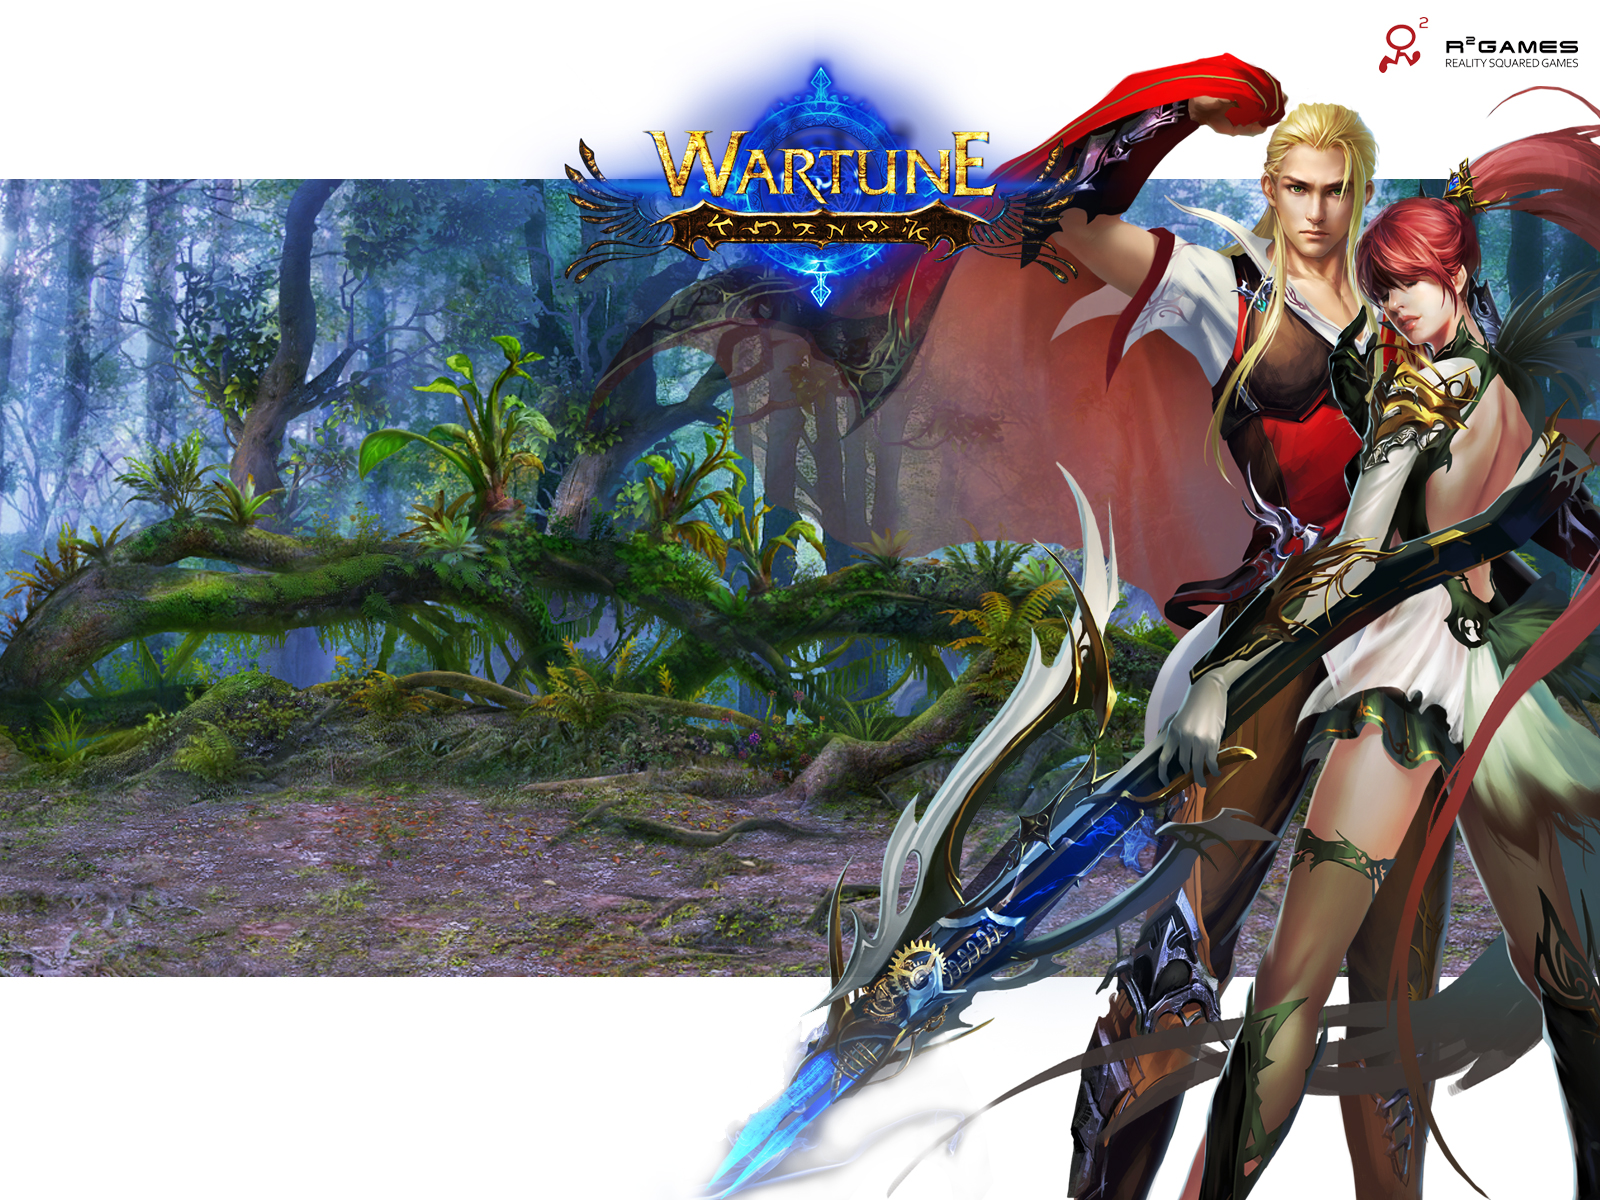 Video Game - Wartune  -  Games -  Video Game -  Mmorpg -  Browser Games -  Strategy Games Wallpaper